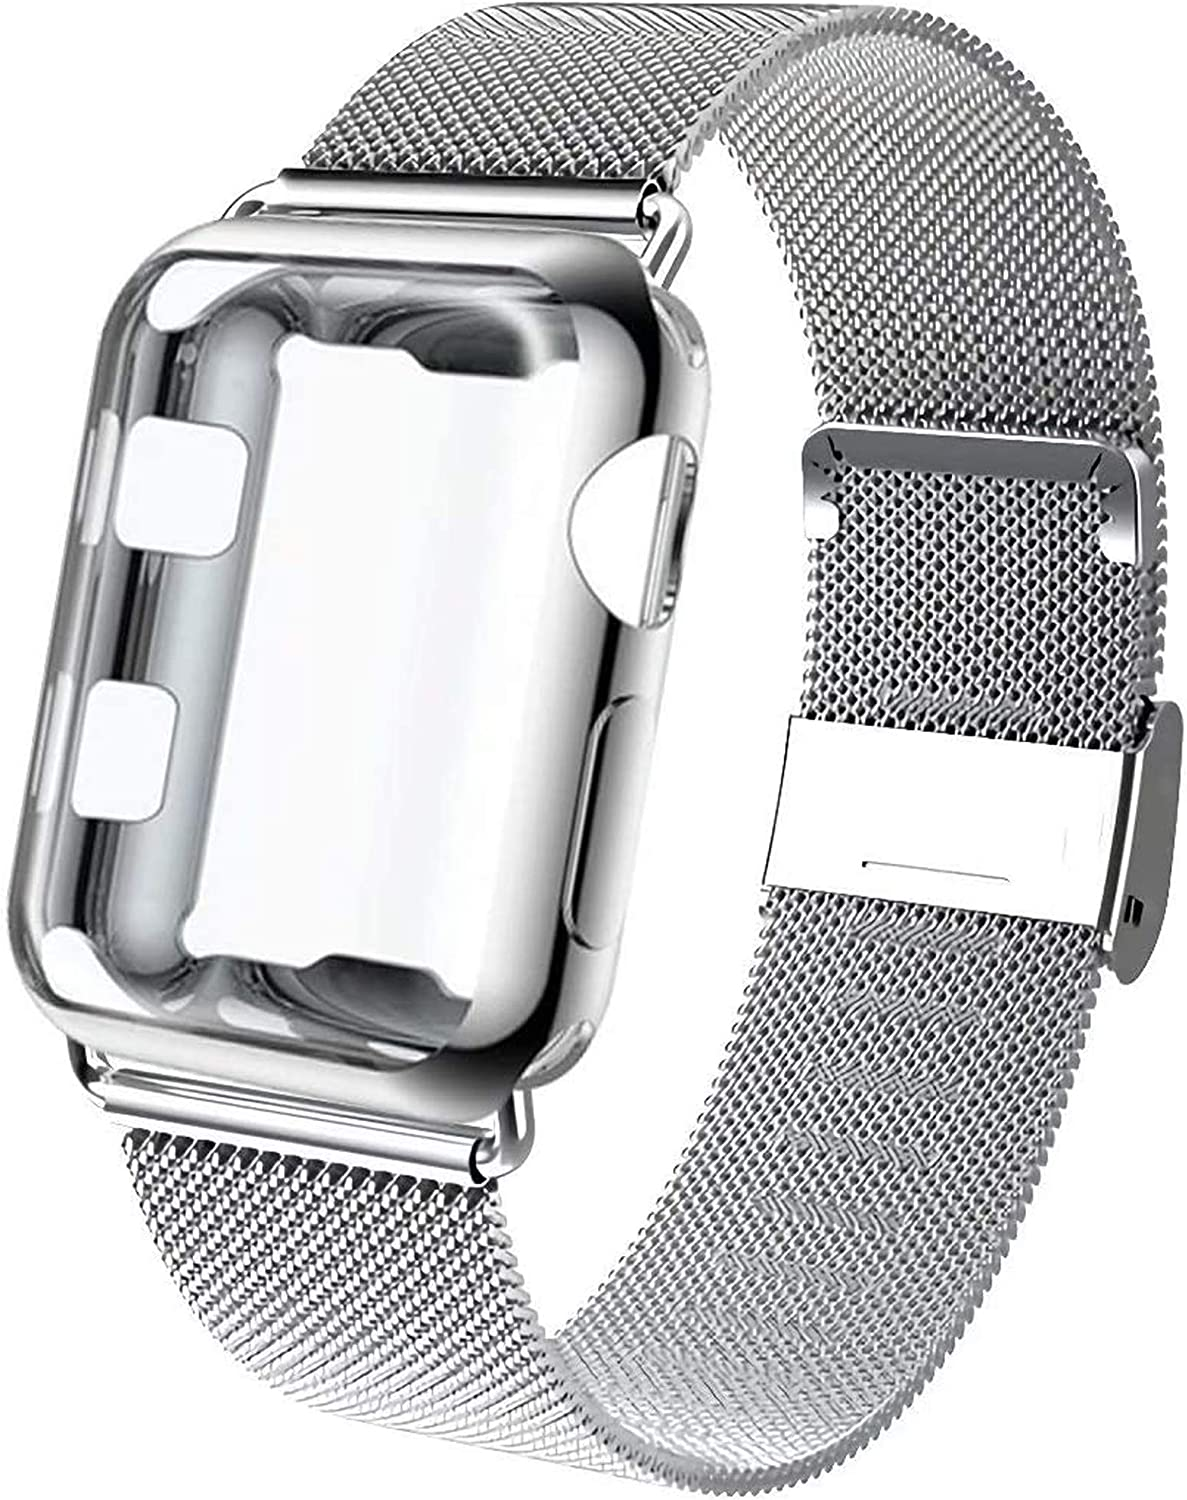 GBPOOT Compatible for Apple Watch Band 38mm 40mm 42mm 44mm with Screen Protector Case, Sports Wristband Strap Replacement Band with Protective Case for Iwatch Series 6/SE/5/4/3/2/1,42mm,Silver